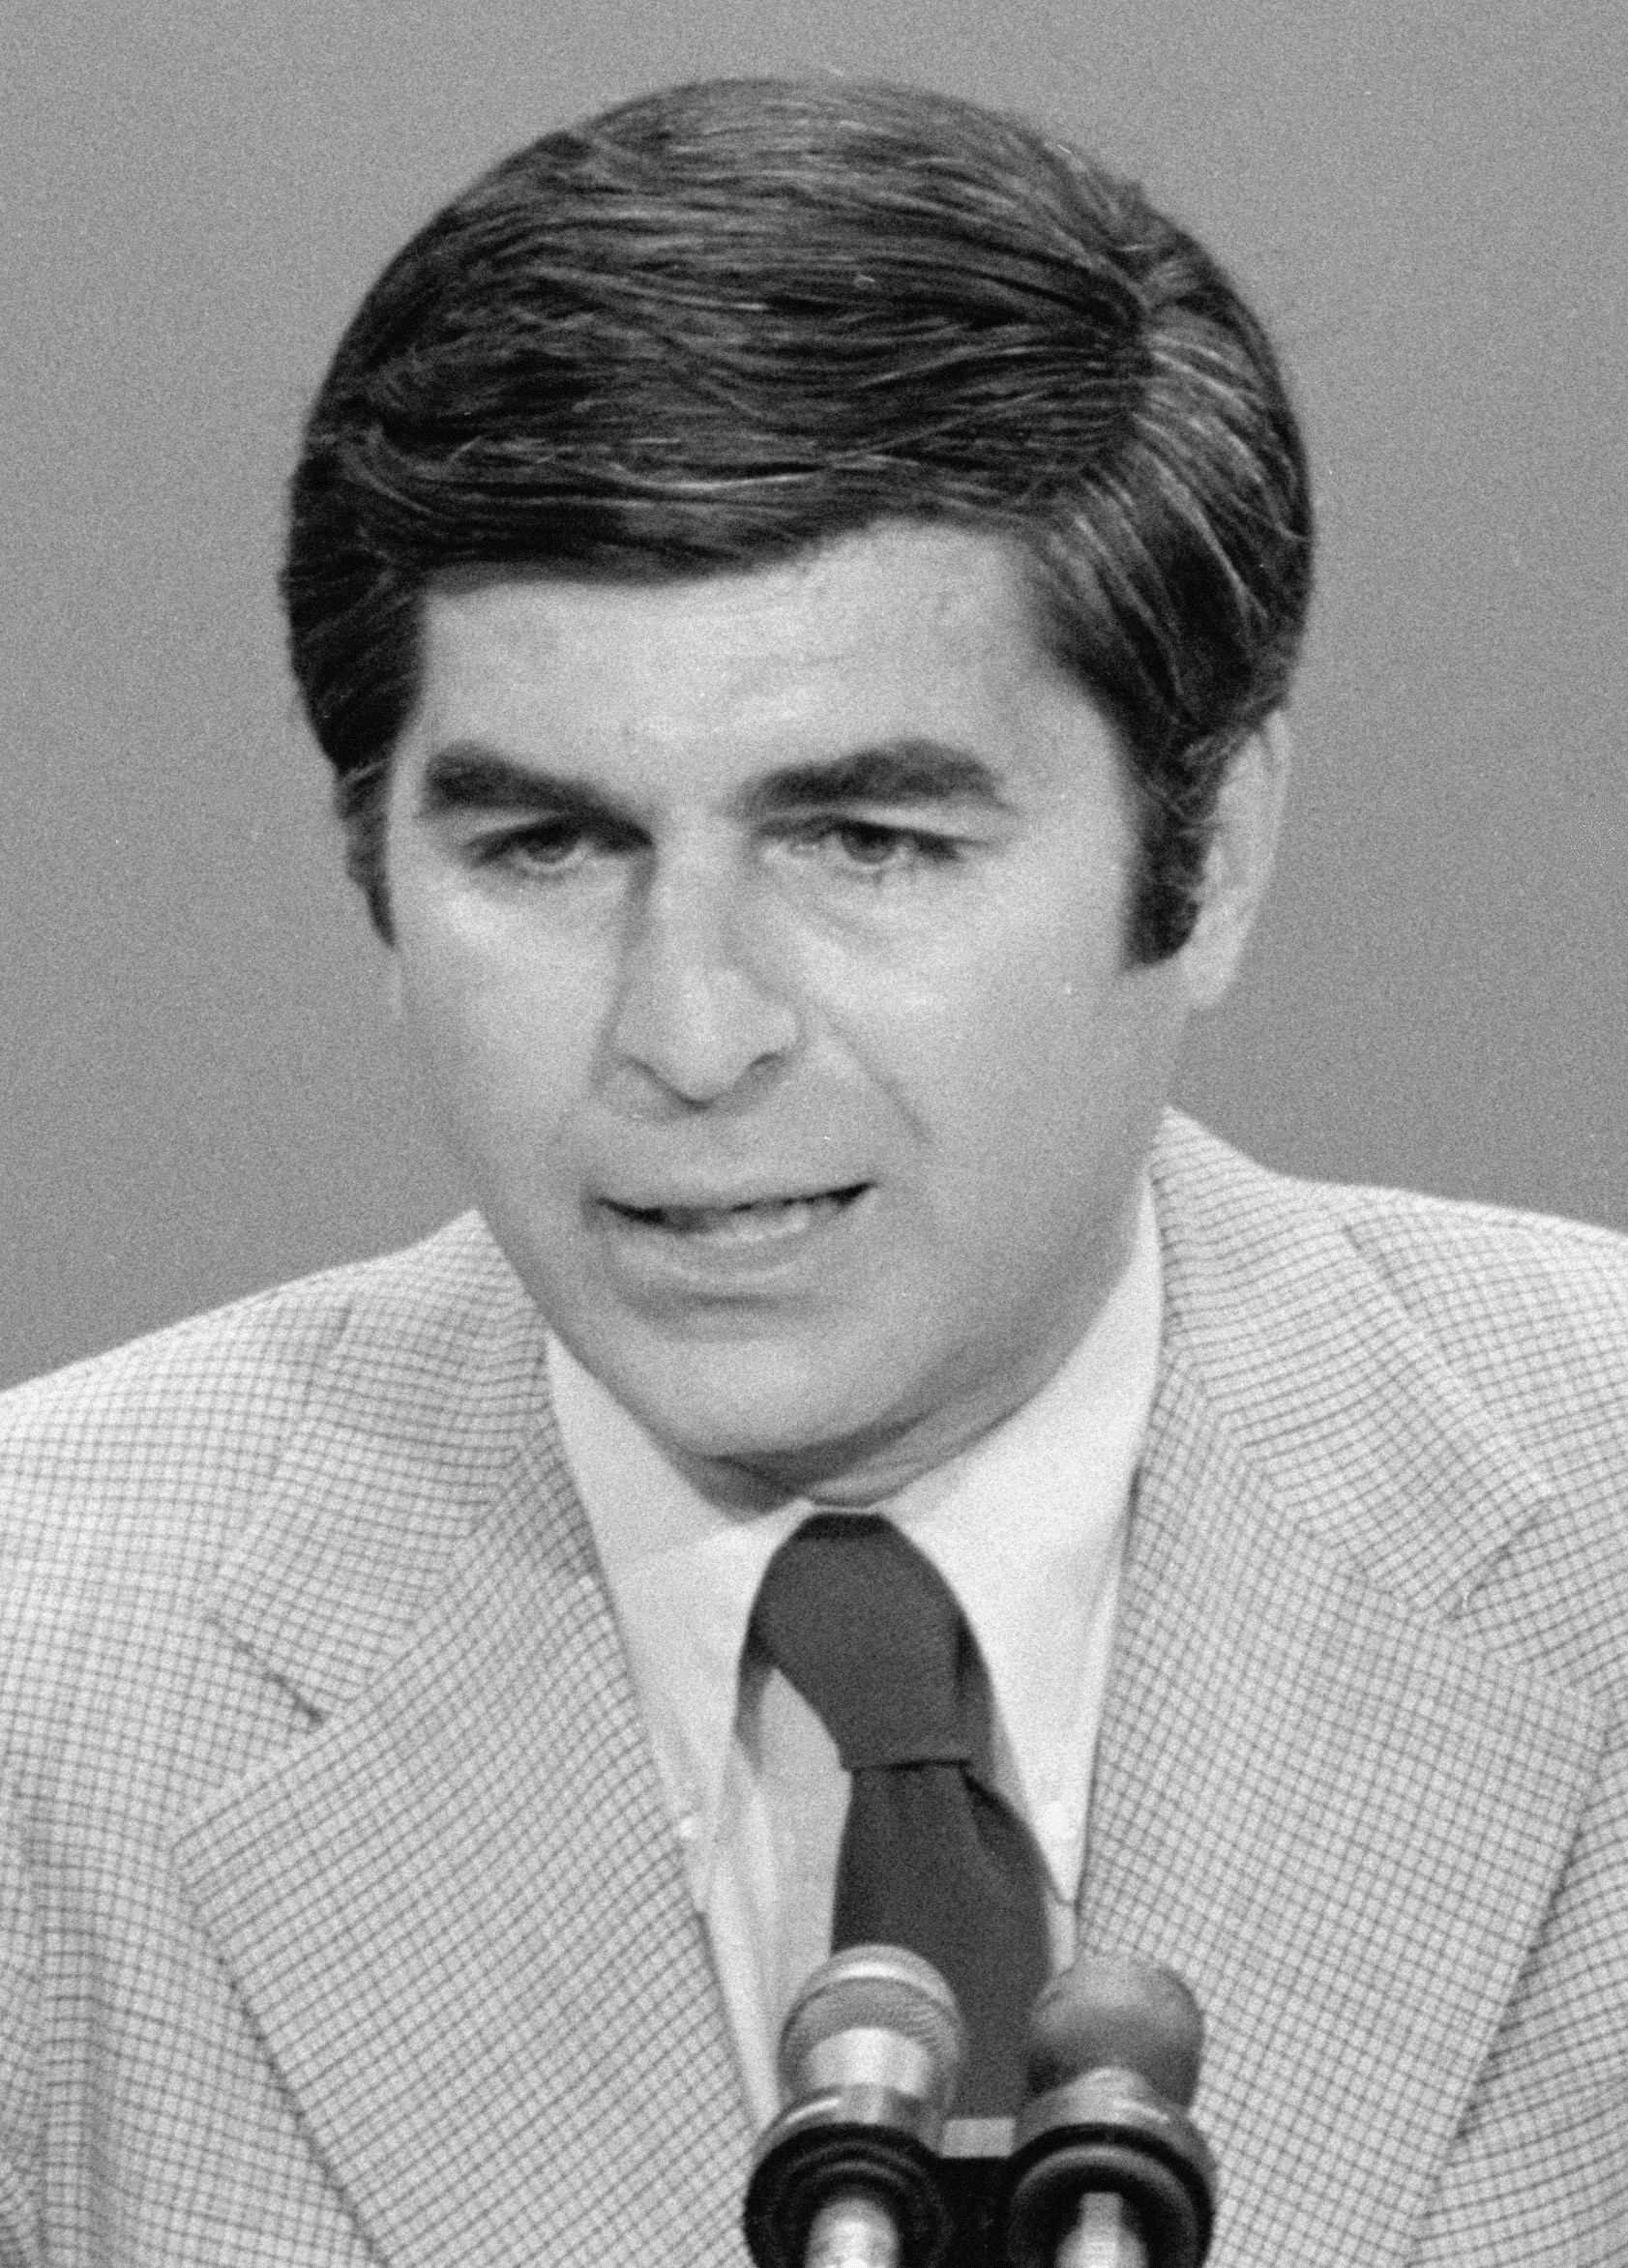 https://upload.wikimedia.org/wikipedia/commons/b/bb/Governor_Dukakis_speaks_at_the_1976_Democratic_National_Convention_%28cropped%29.jpg